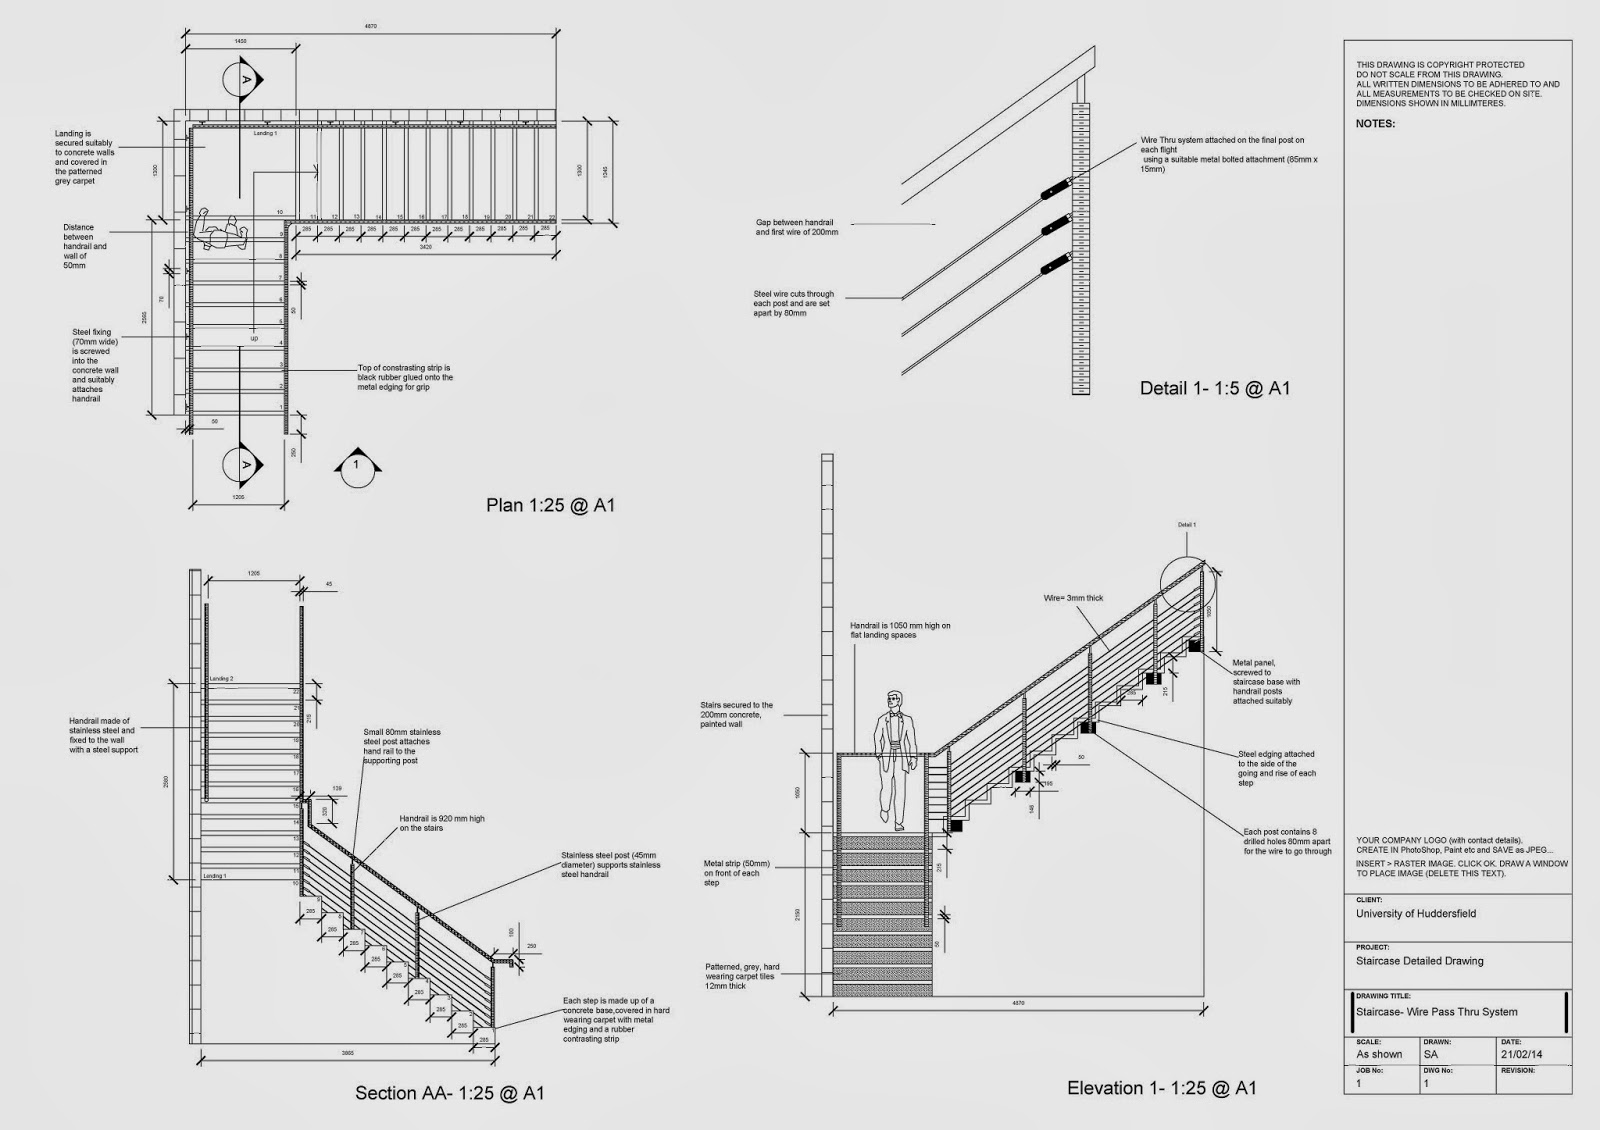 Uncategorized Staircase Detailing my work the image above shows final staircase detailing that i submitted also then chose to finish off lower section of in sketch up and